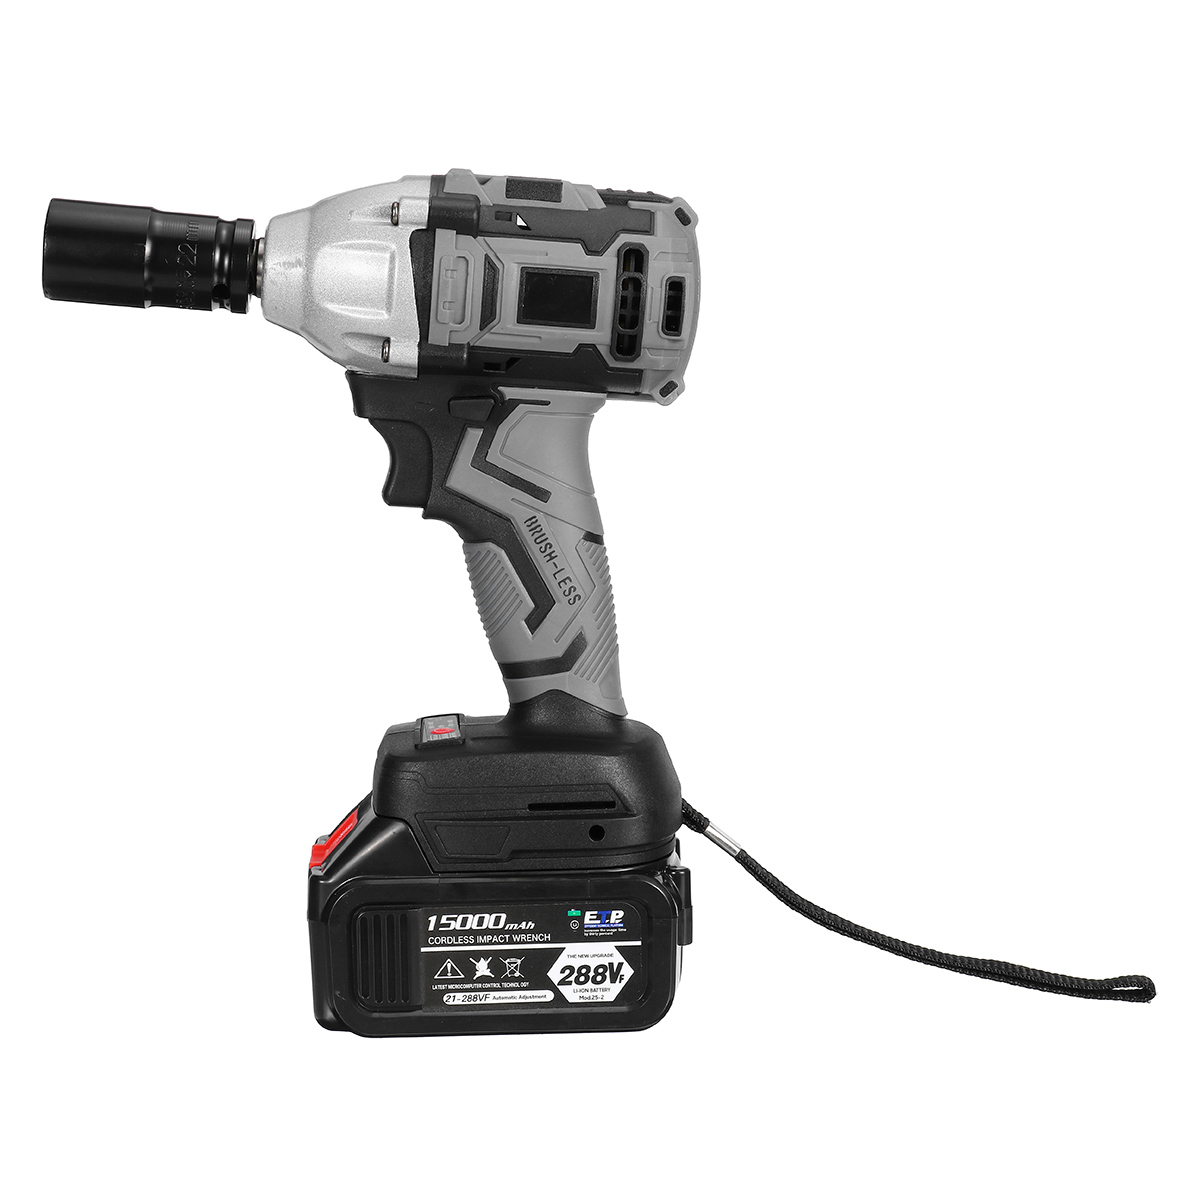 288VF 800N.M Cordless Brushless Electric Impact Wrench Tool W/ LED Light